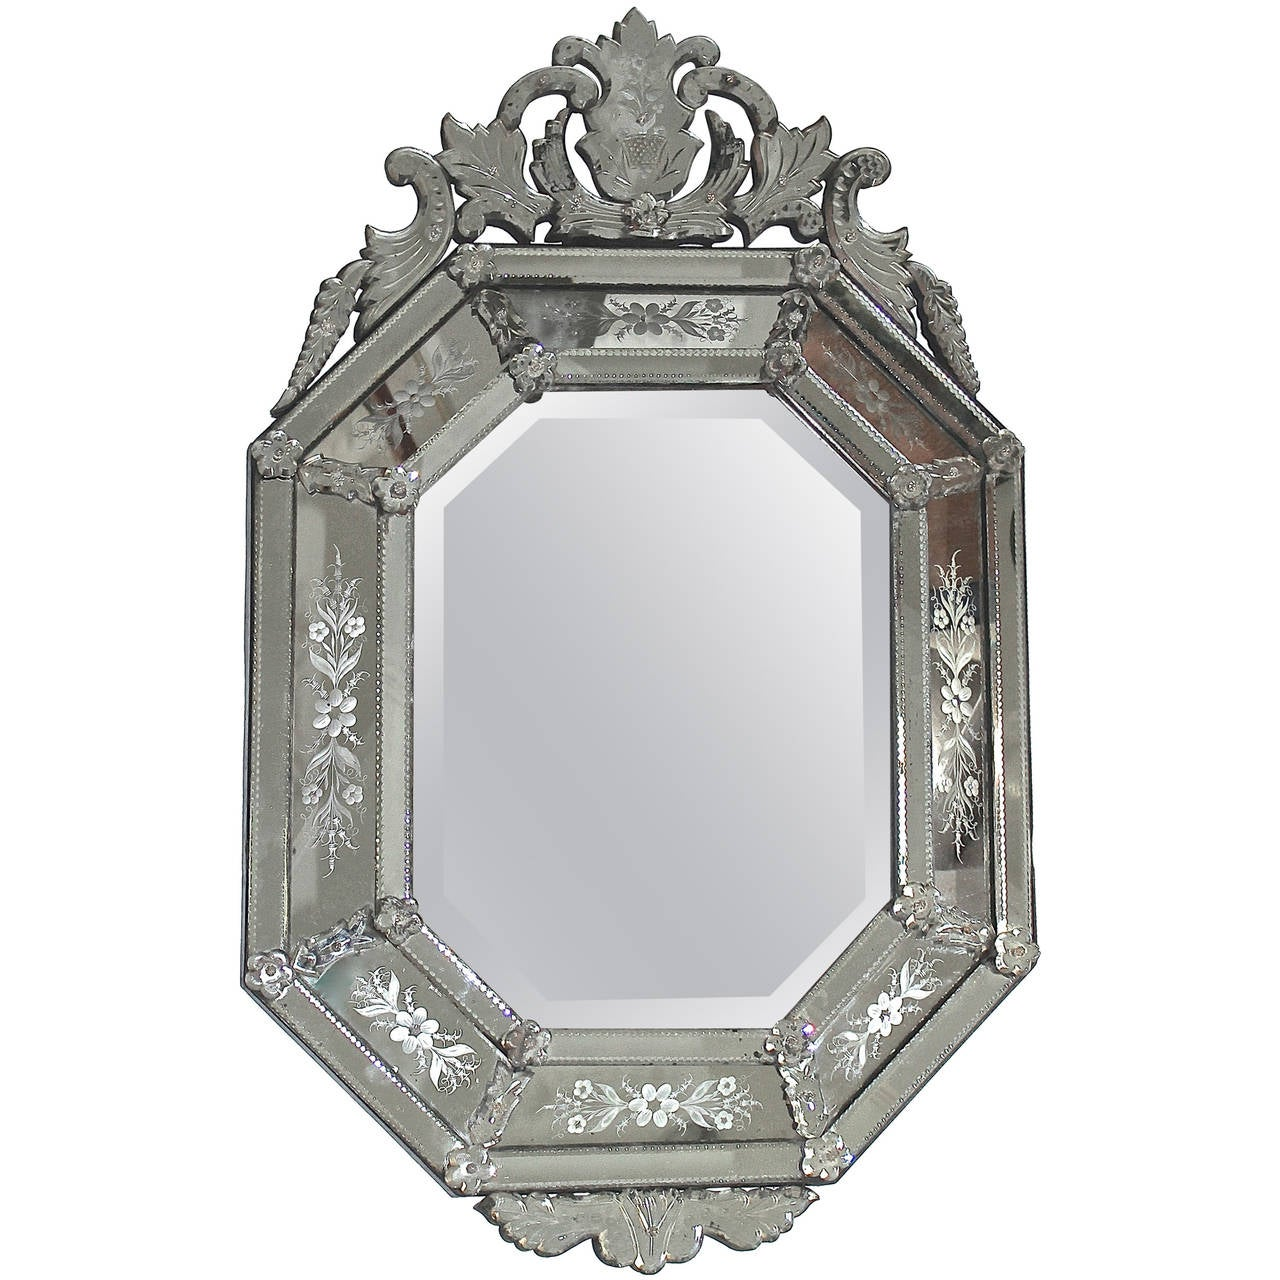 Italian venetian etched glass wall mirror for sale at 1stdibs for Mirrors for sale